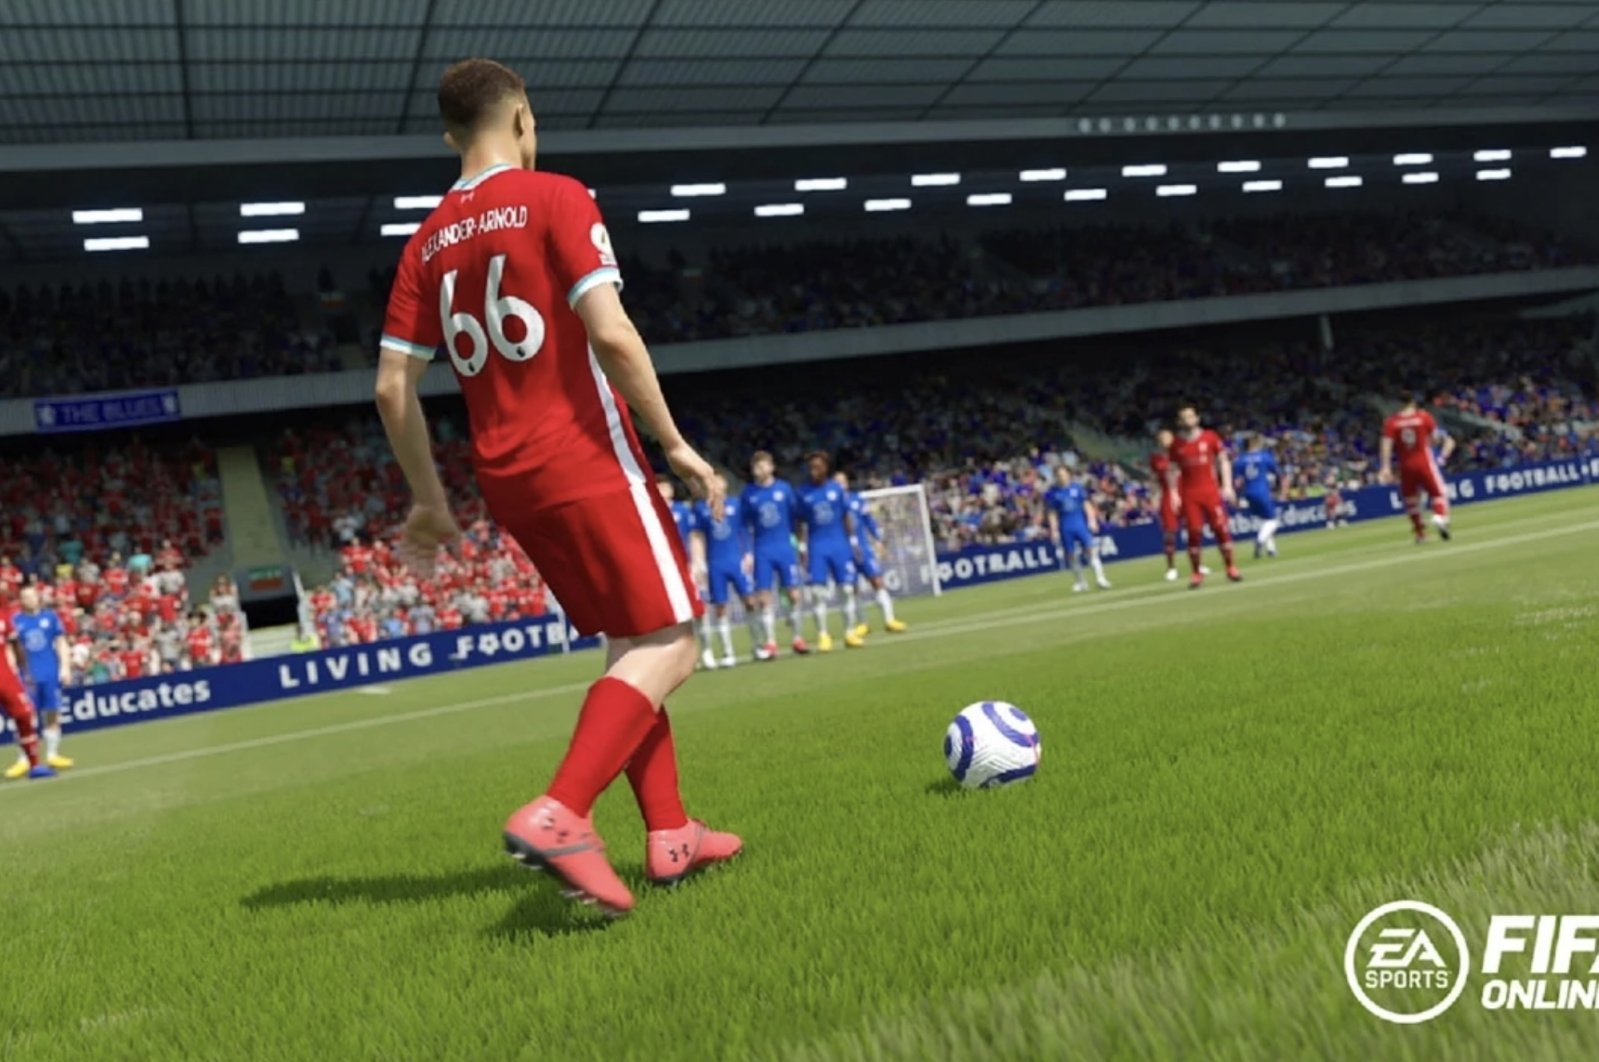 Liverpool's Trent Alexander-Arnold is seen behind the ball before a free kick during FIFA Online 4 gameplay (Credit: EA Sports)